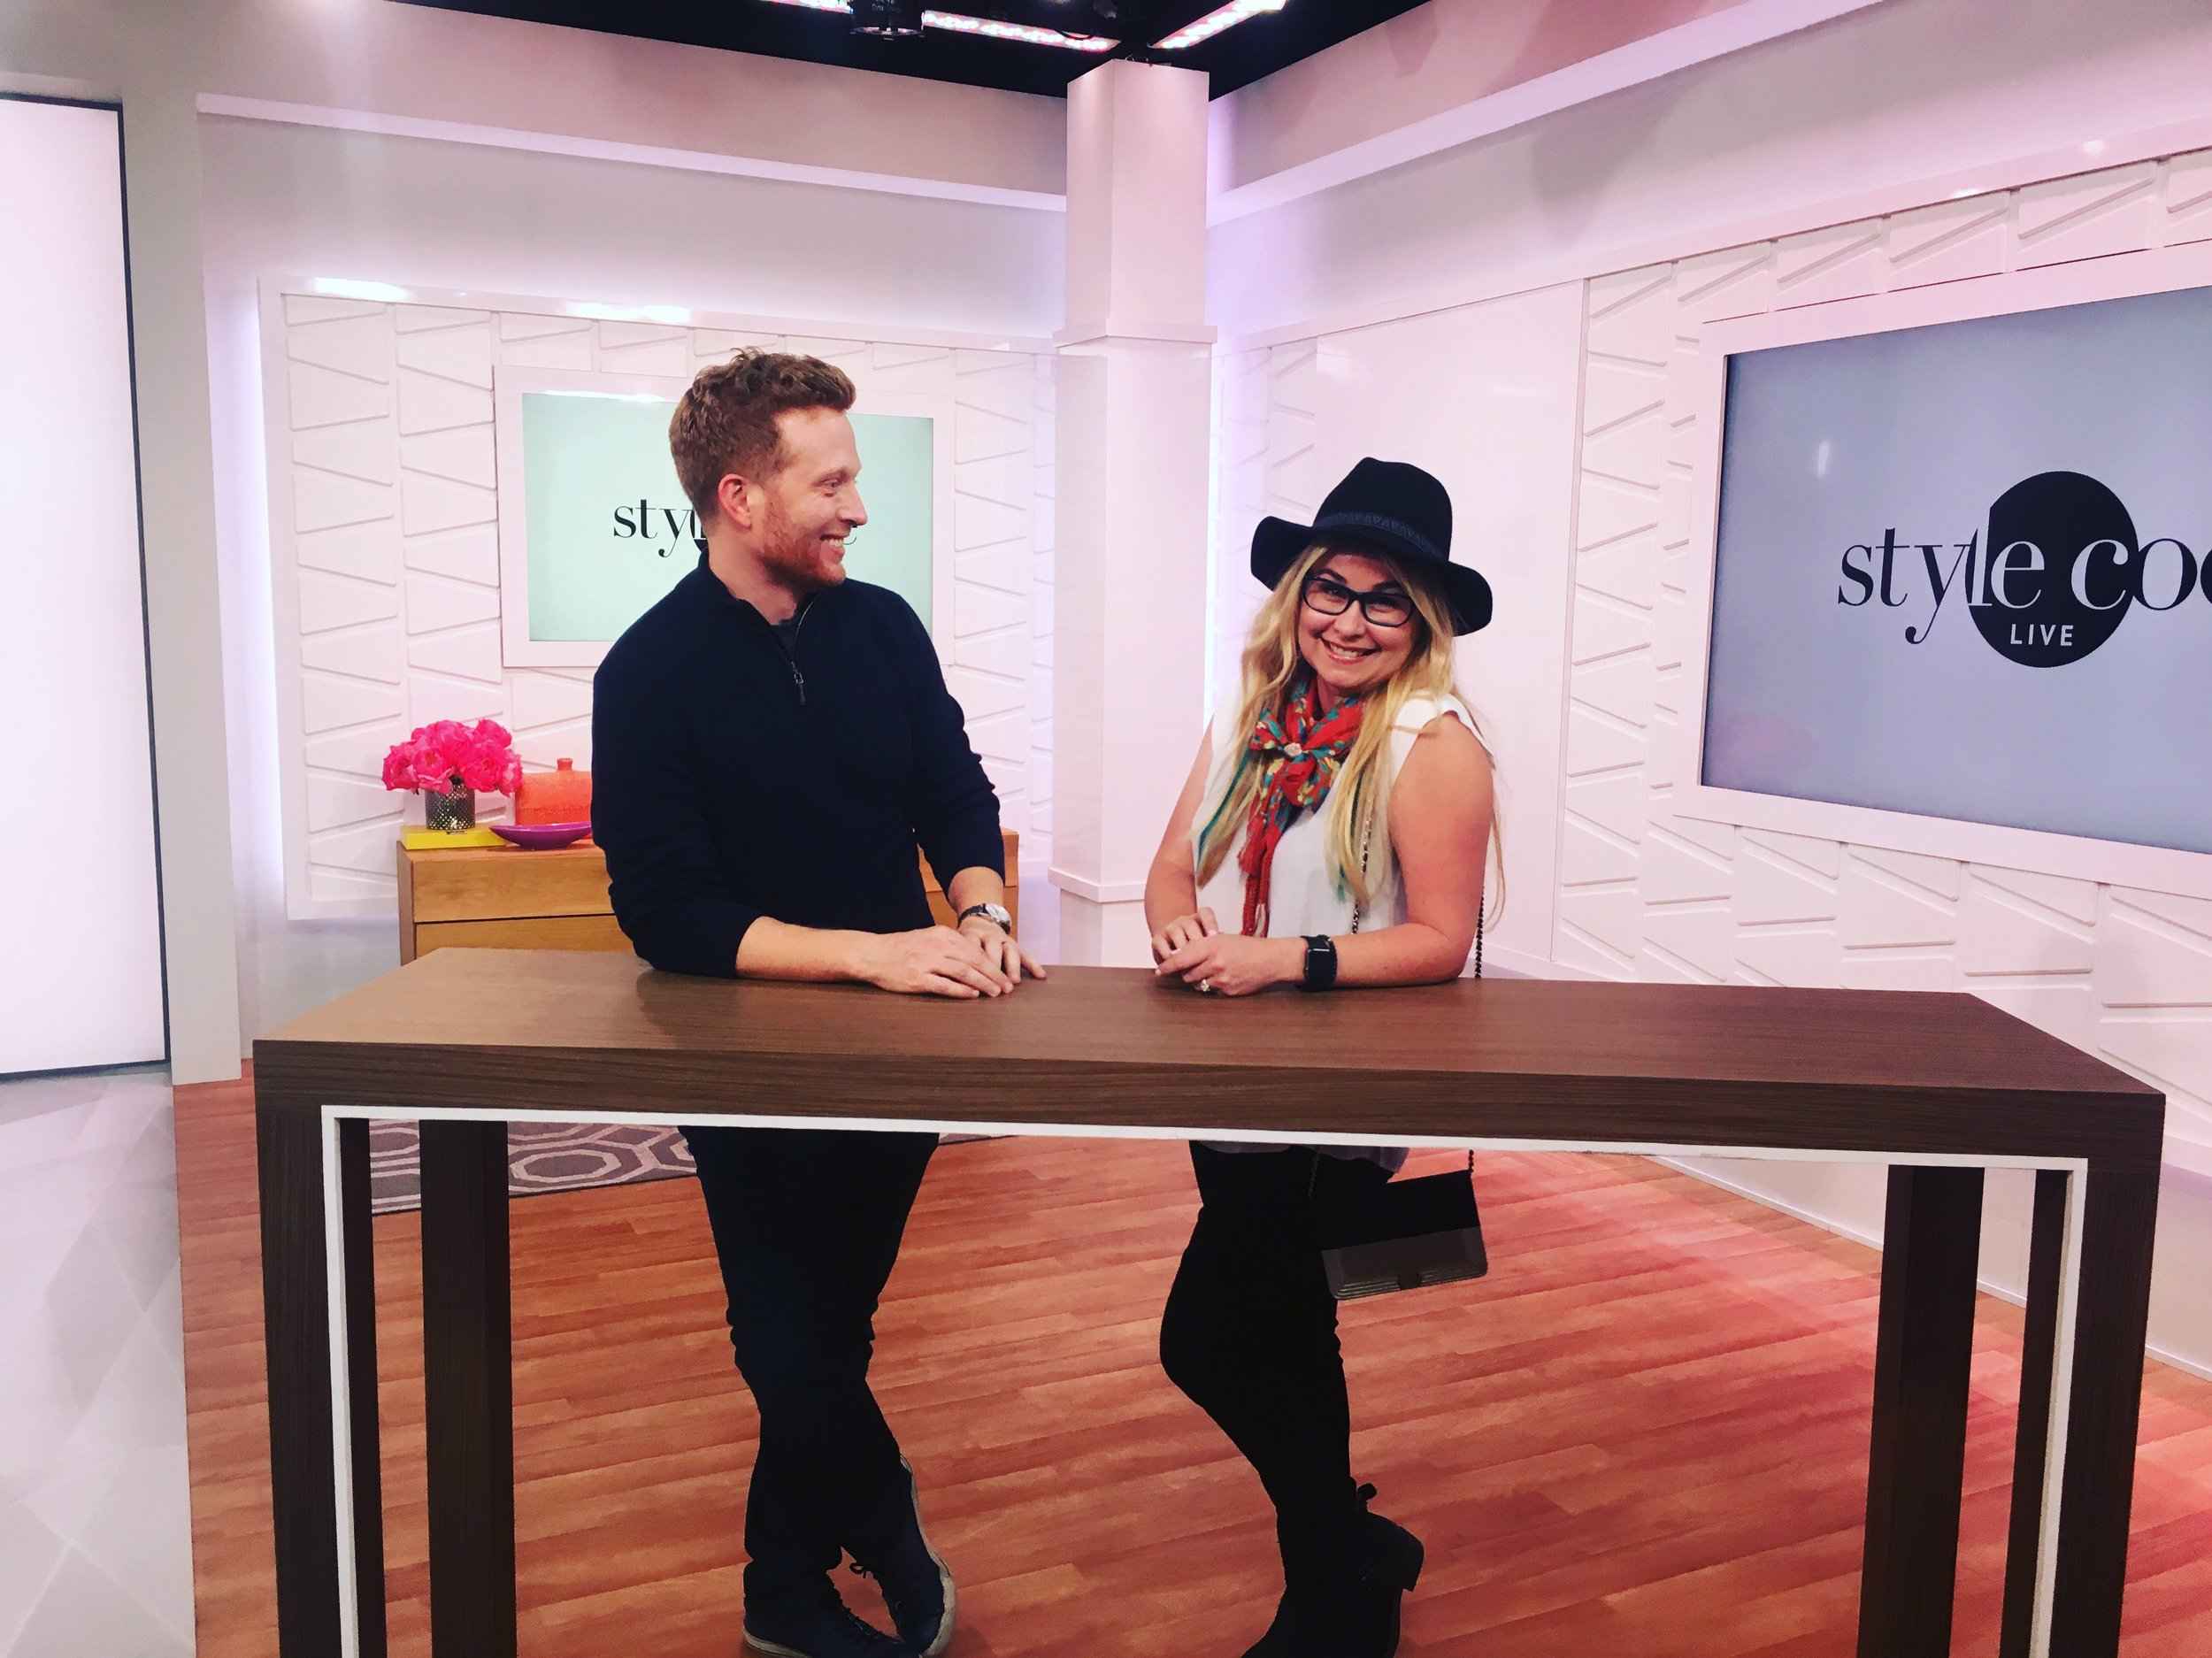 On the set of Style Code Live